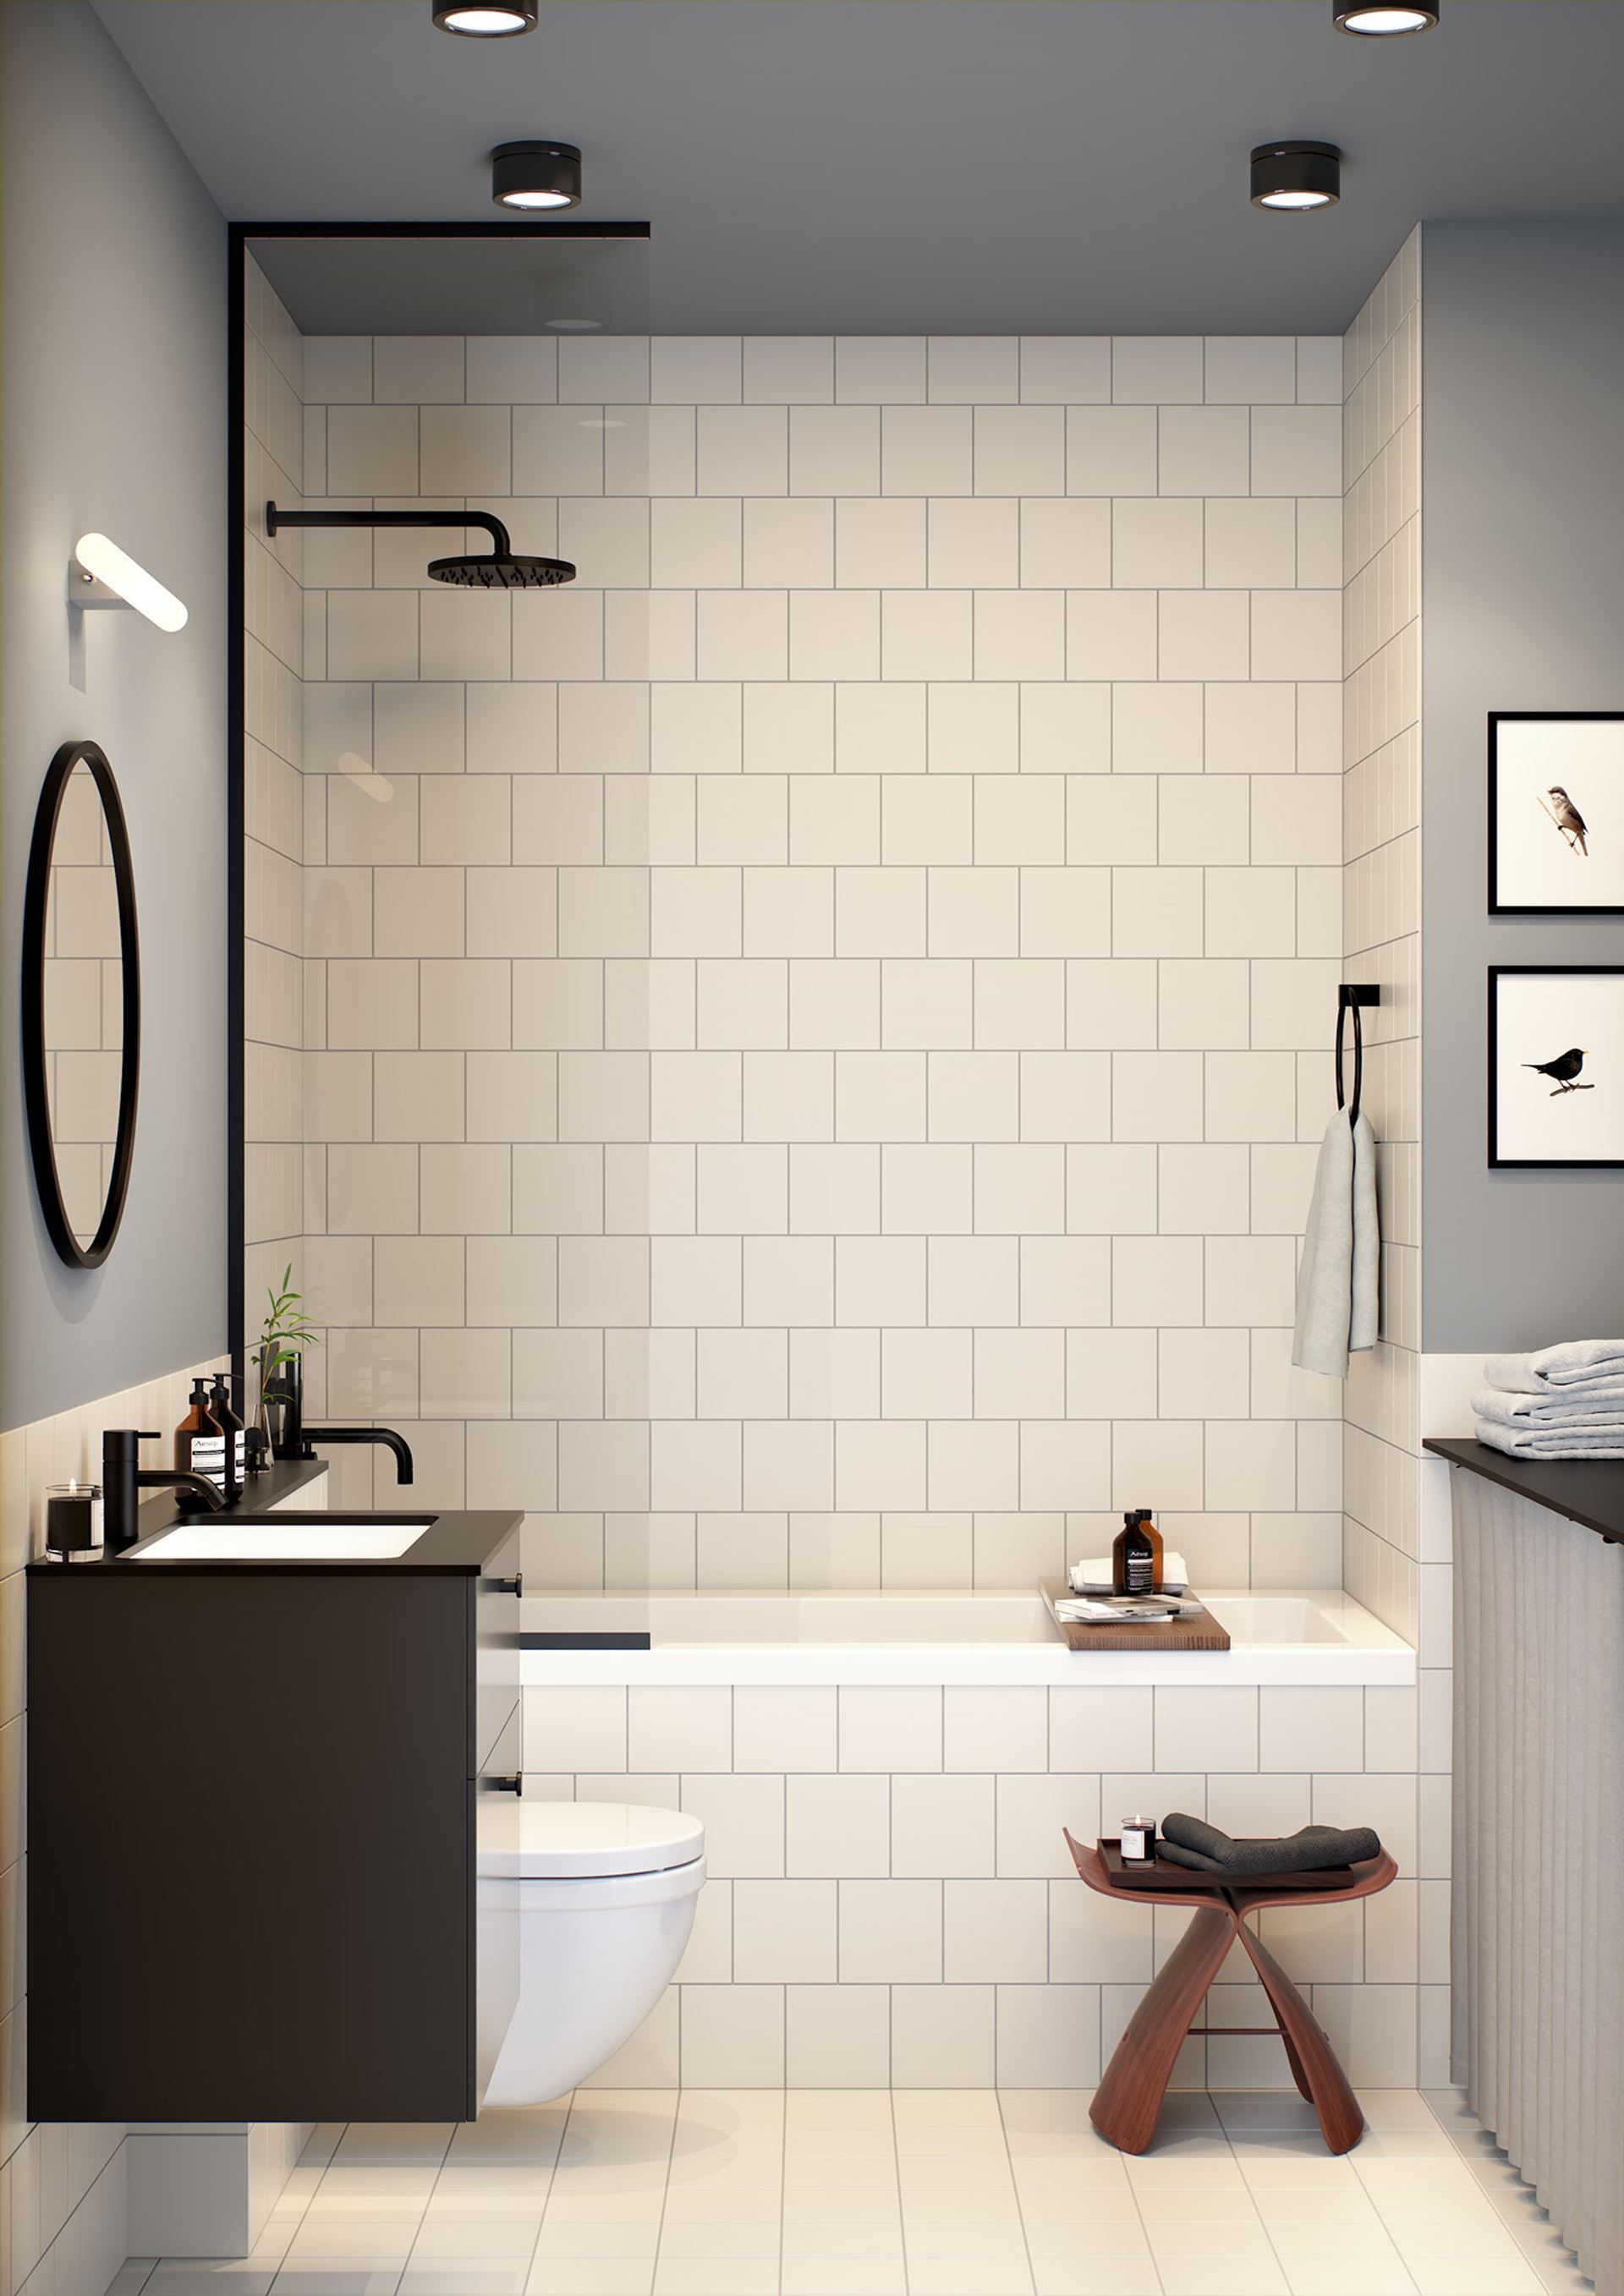 Botanikern, Rosendal, Uppsala | Bathrooms Ideas | Pinterest ...